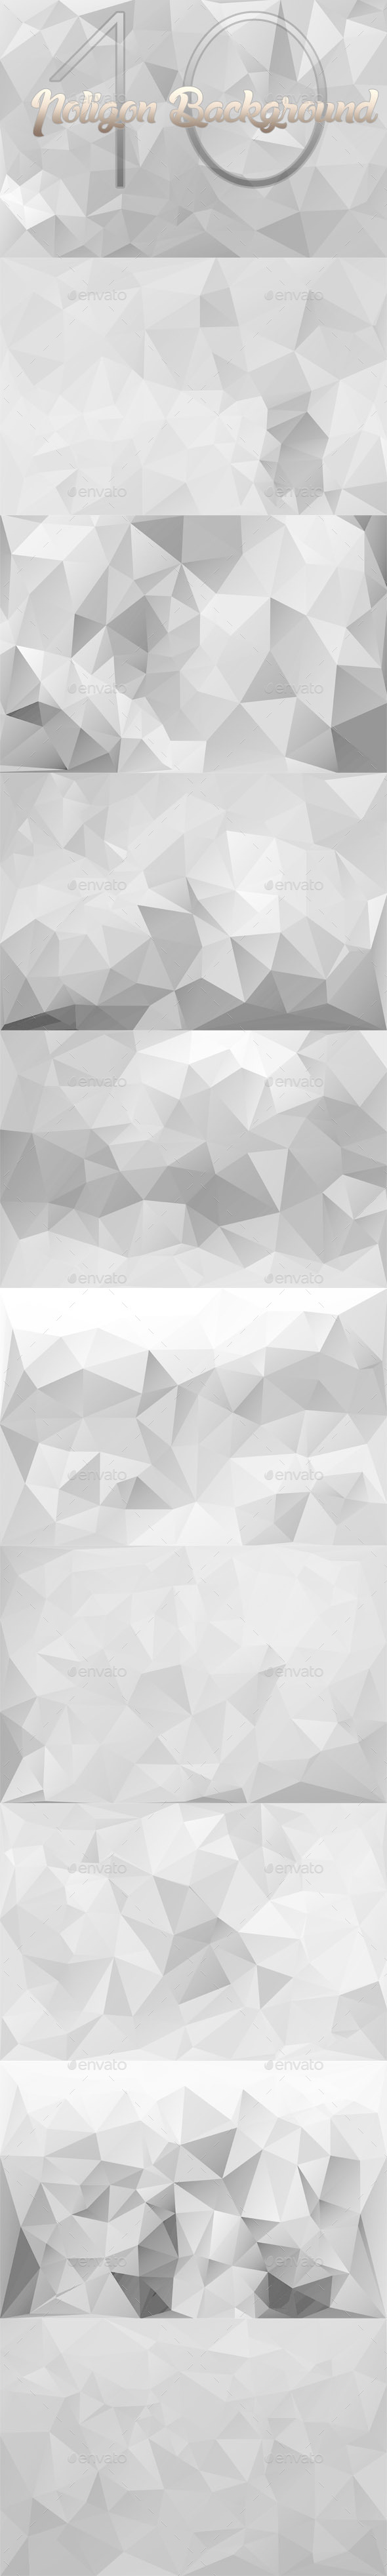 GraphicRiver 10 Backgrounds Polygon Part 9 10186349